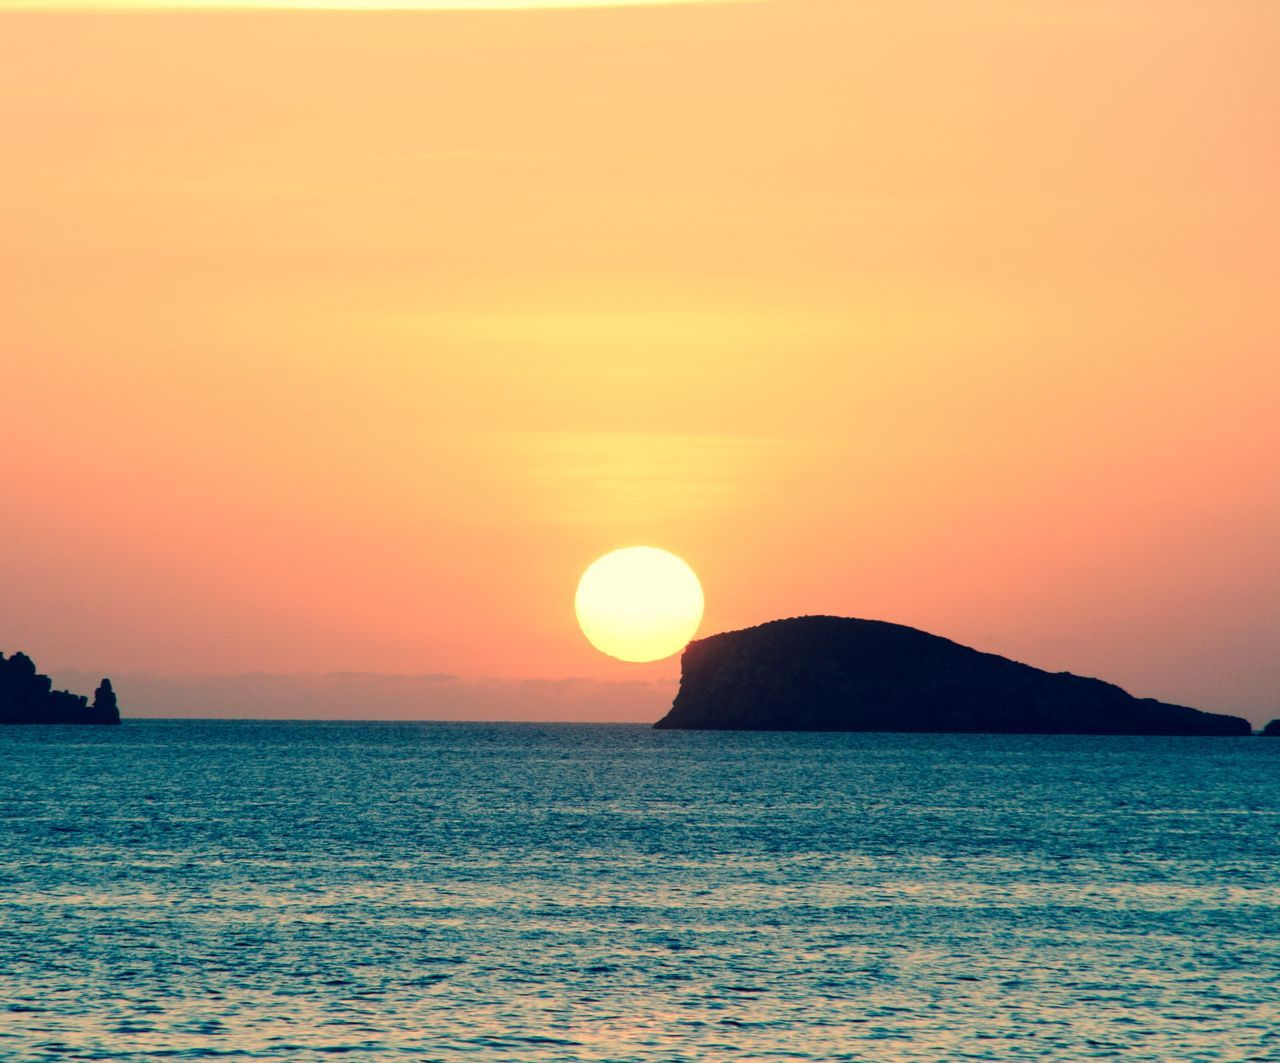 sea, sunset, beauty in nature, scenics, tranquility, nature, horizon over water, tranquil scene, water, sun, orange color, idyllic, waterfront, sky, silhouette, no people, outdoors, clear sky